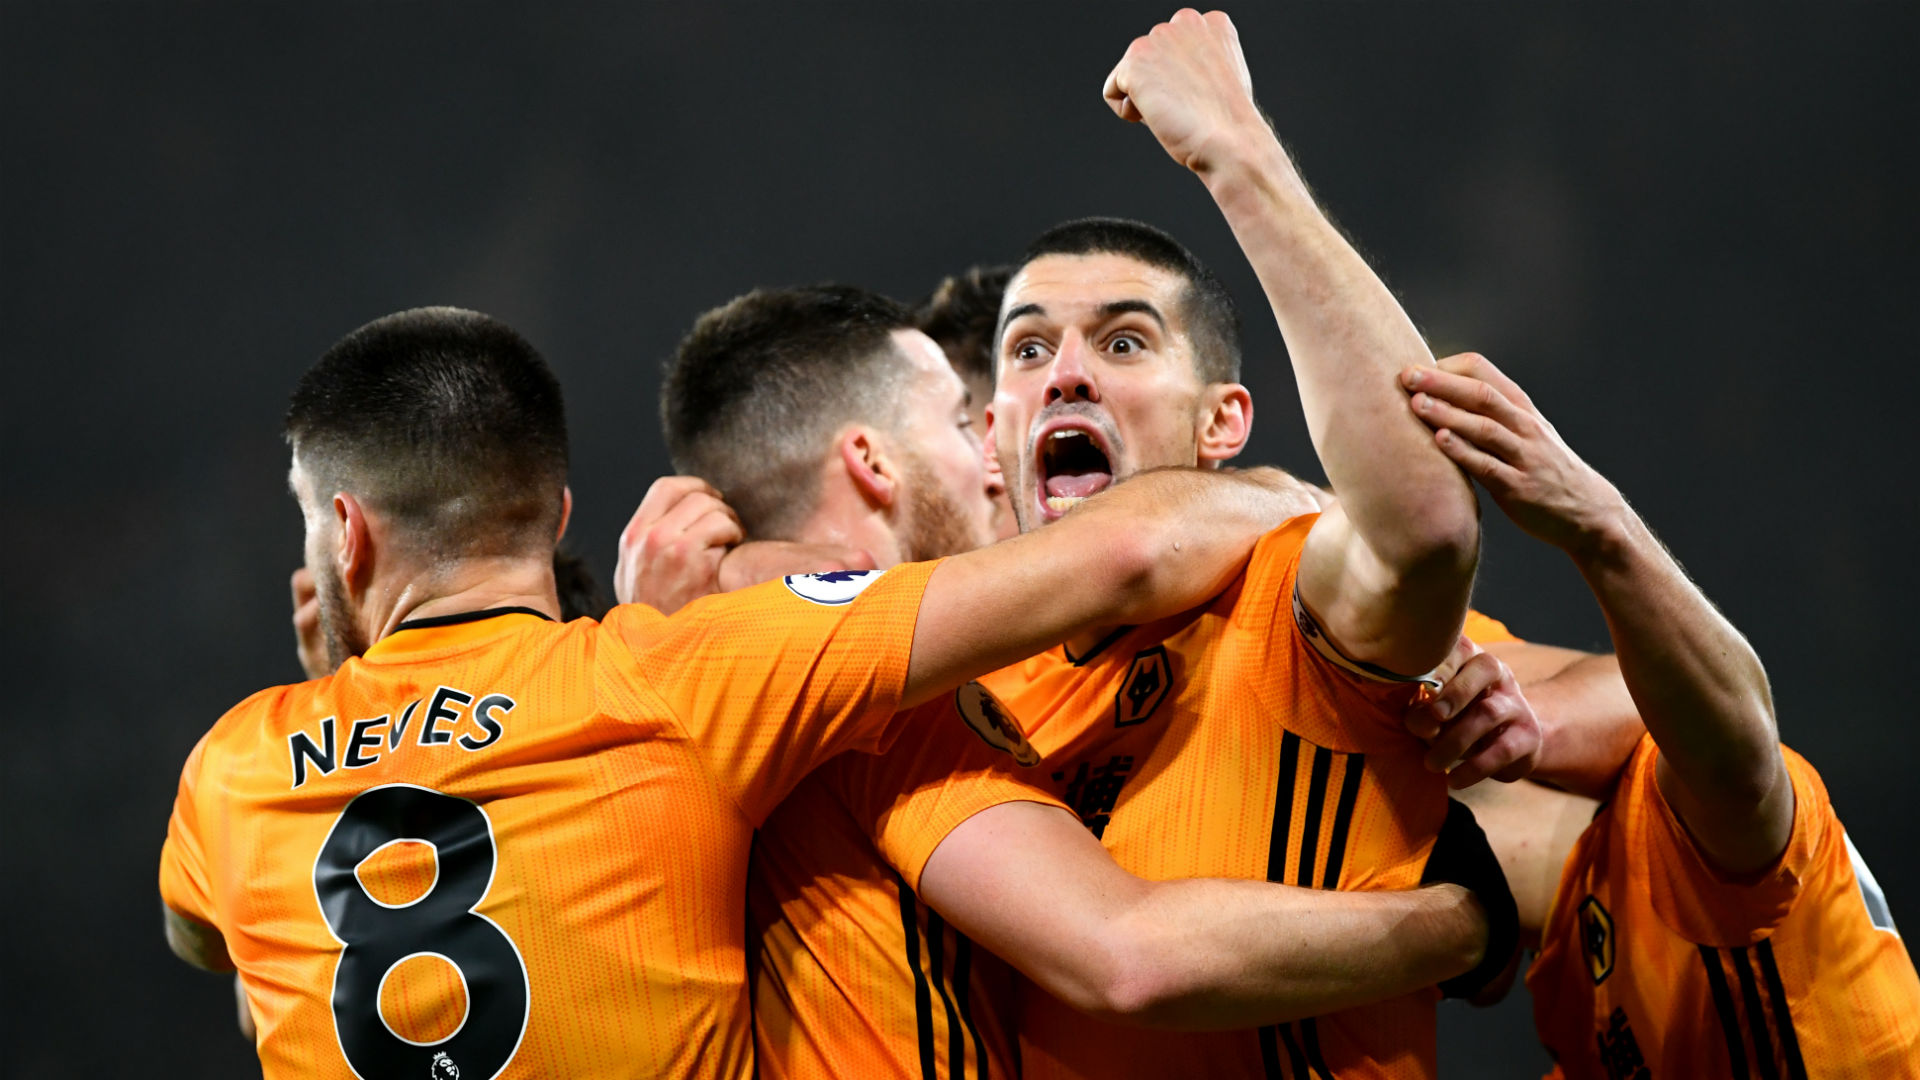 Wolves 3-2 Manchester City: Traore, Jimenez inspire fightback as Ederson sees red